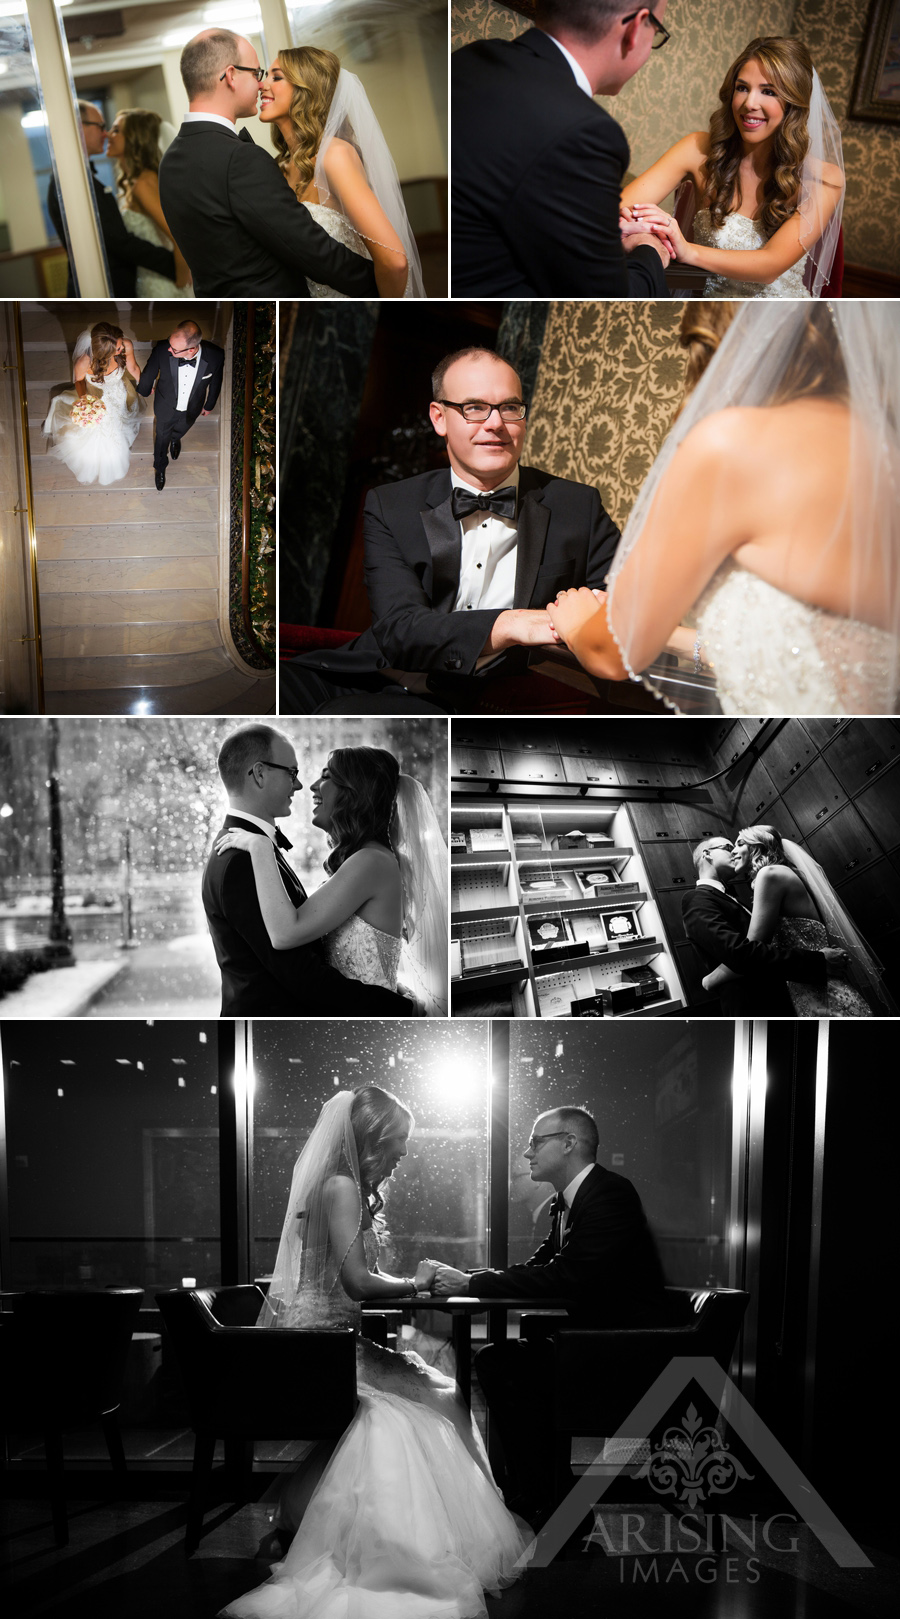 Gorgeous Michigan bride and groom photos